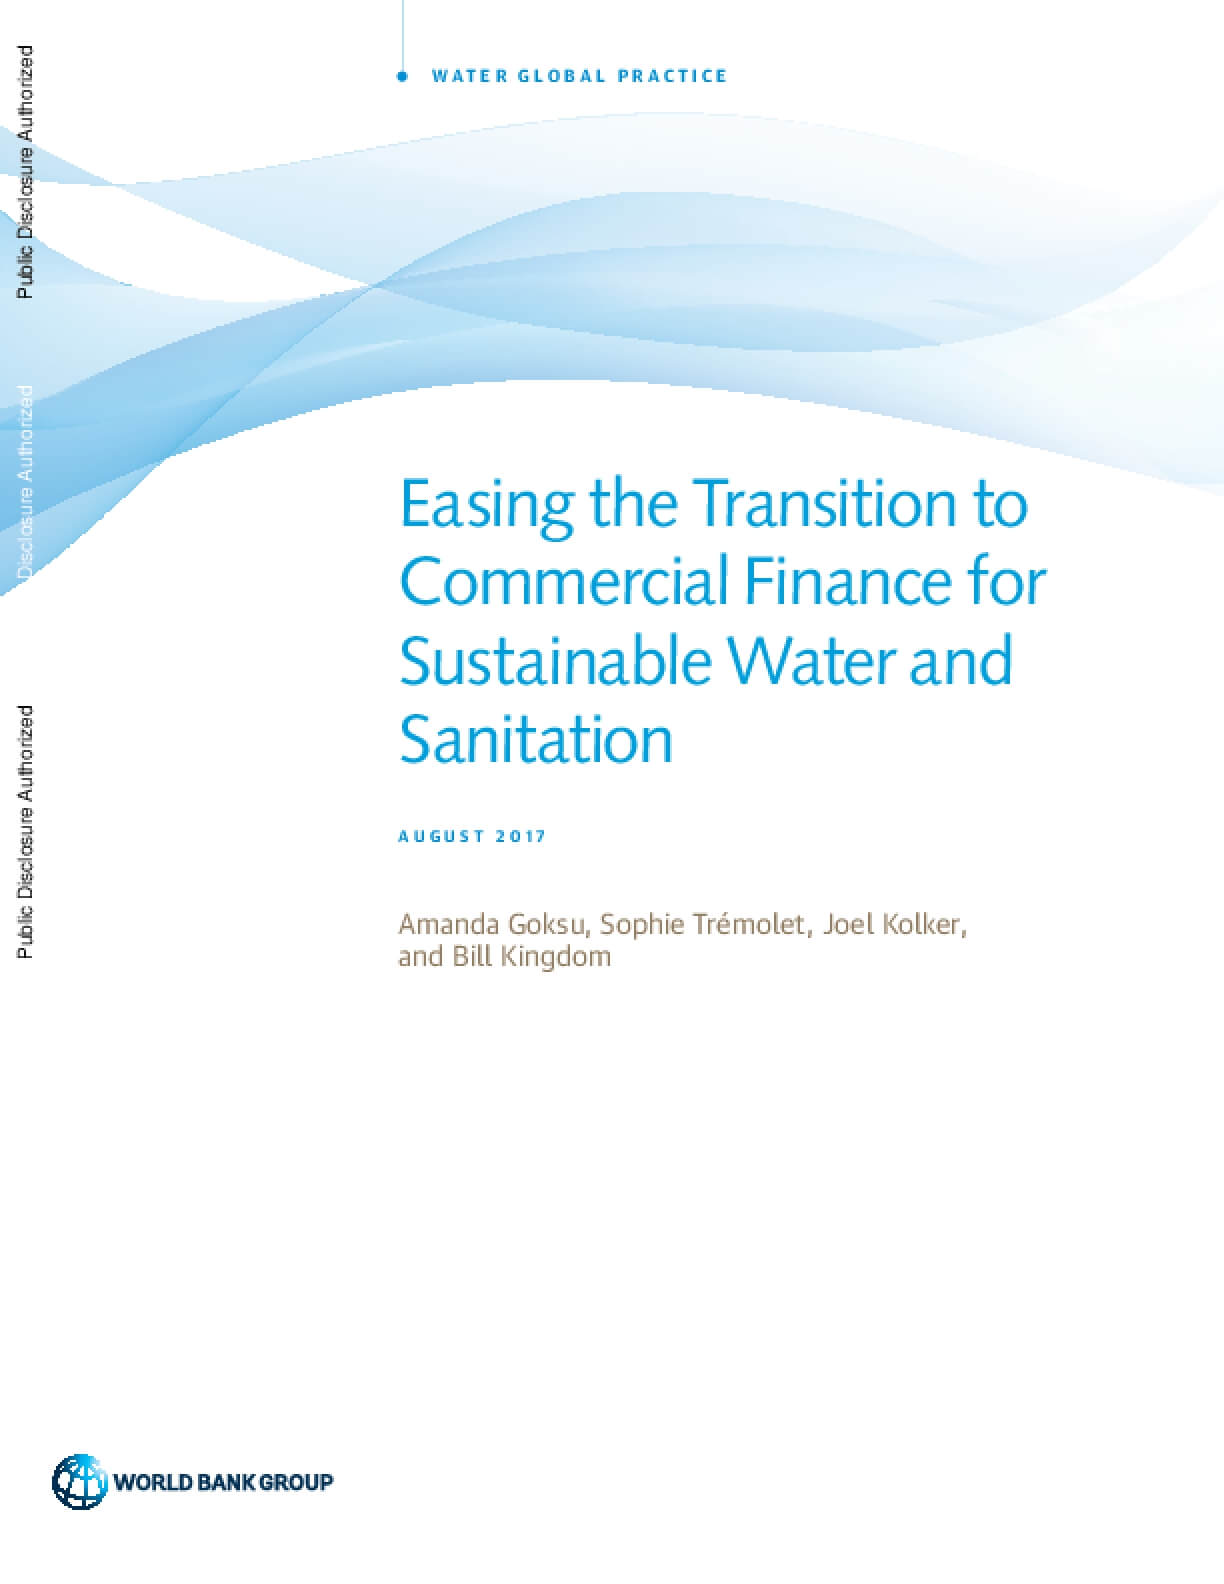 Easing the Transition to Commercial Finance for Sustainable Water and Sanitation